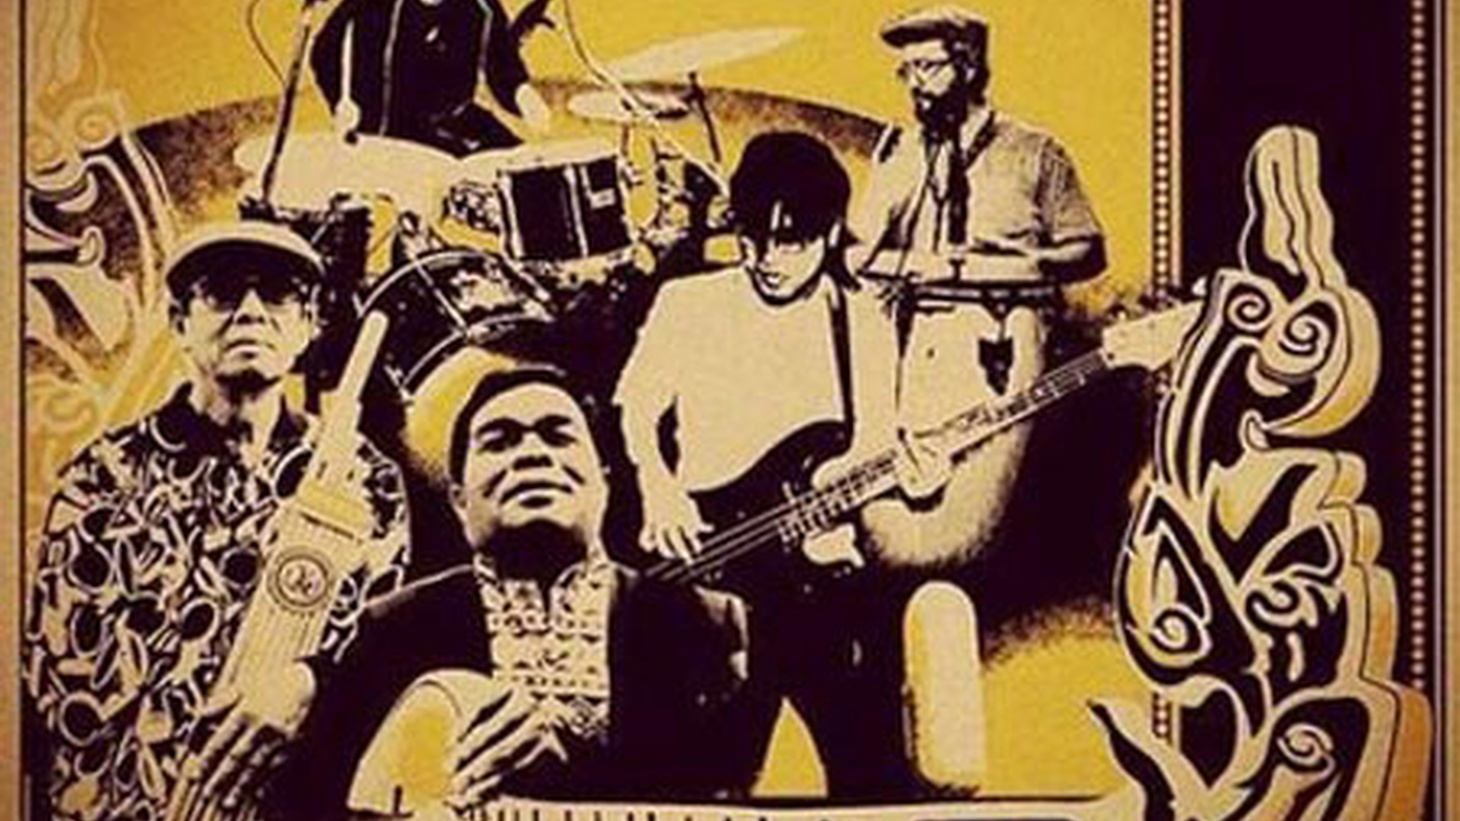 """Coordinated by the brains behind Soundway's acclaimed """"Sound of Siam"""" compilations, the debut record from The Paradise Bangkok Molam Internationl Band is a great addition to the ongoing multicultural soundclash experiments we cherish."""